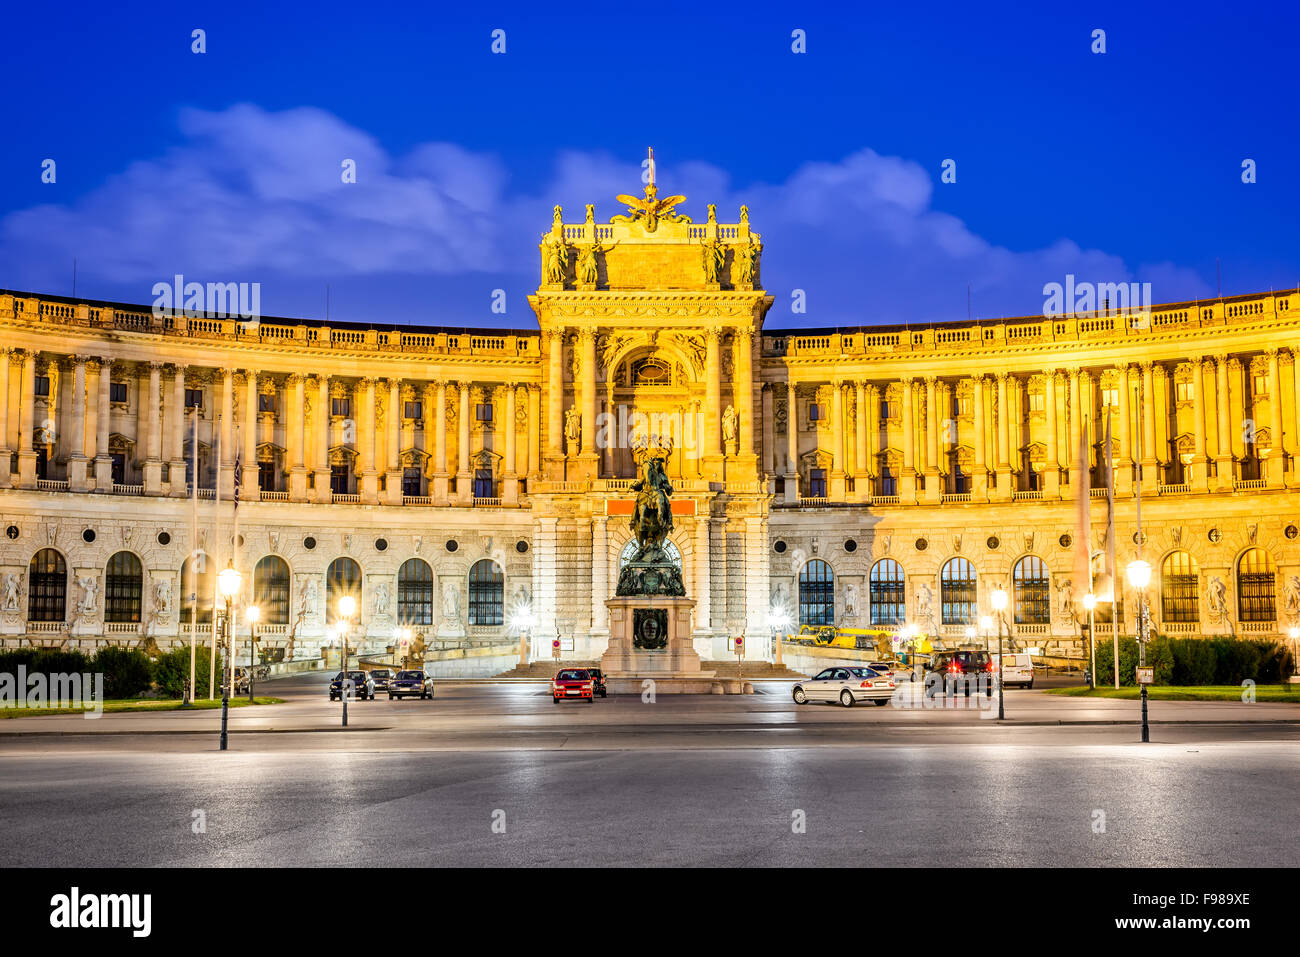 Vienna, Austria. Imperial Hofburg Palace is the former imperial palace in the center of Vienna, residence of Habsburg - Stock Image